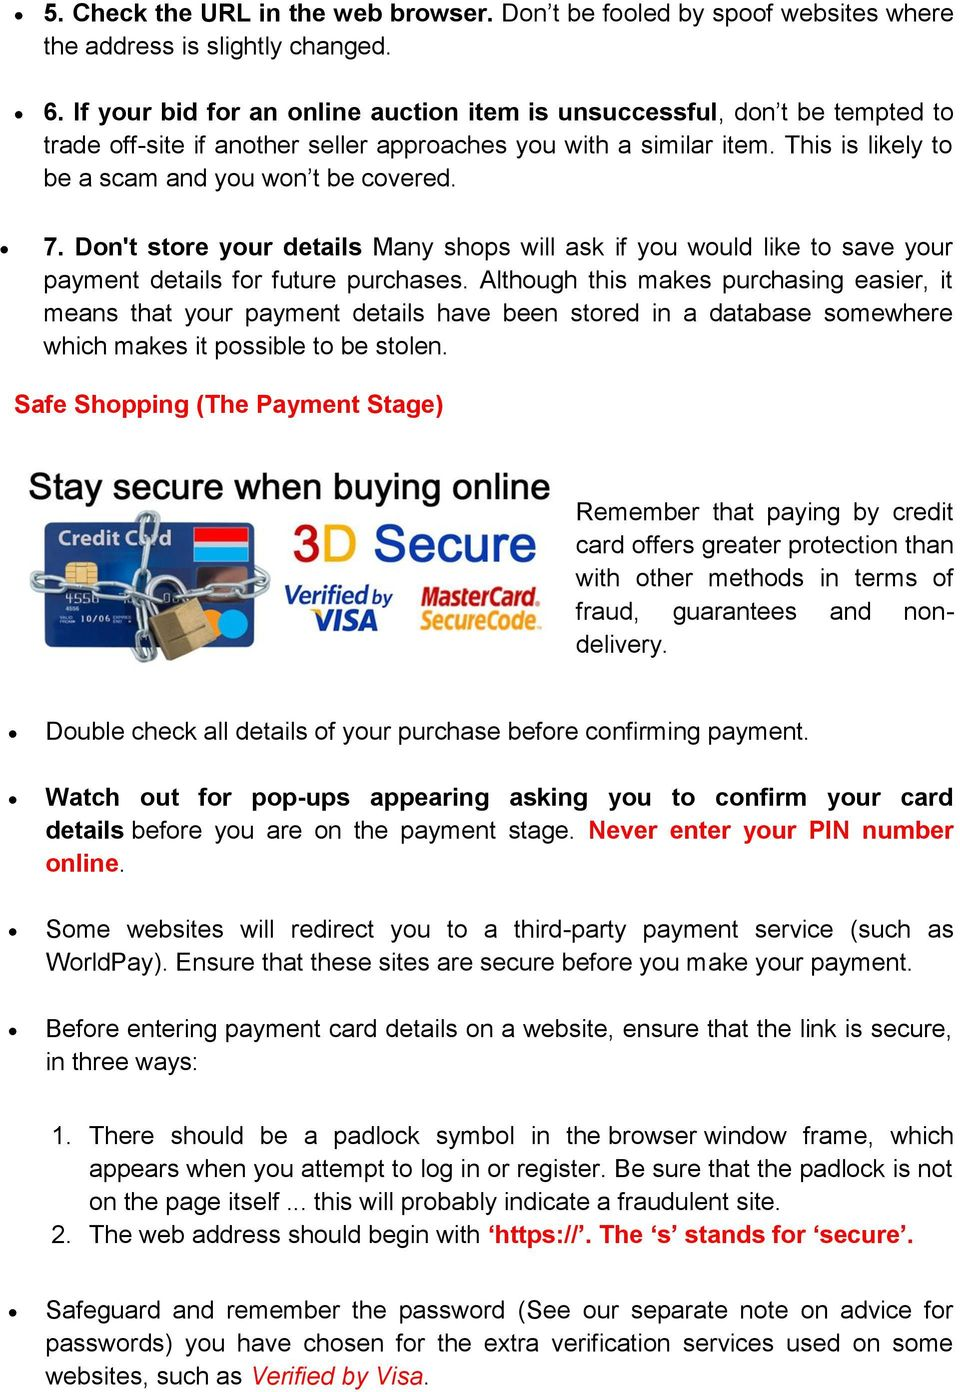 7. Don't store your details Many shops will ask if you would like to save your payment details for future purchases.